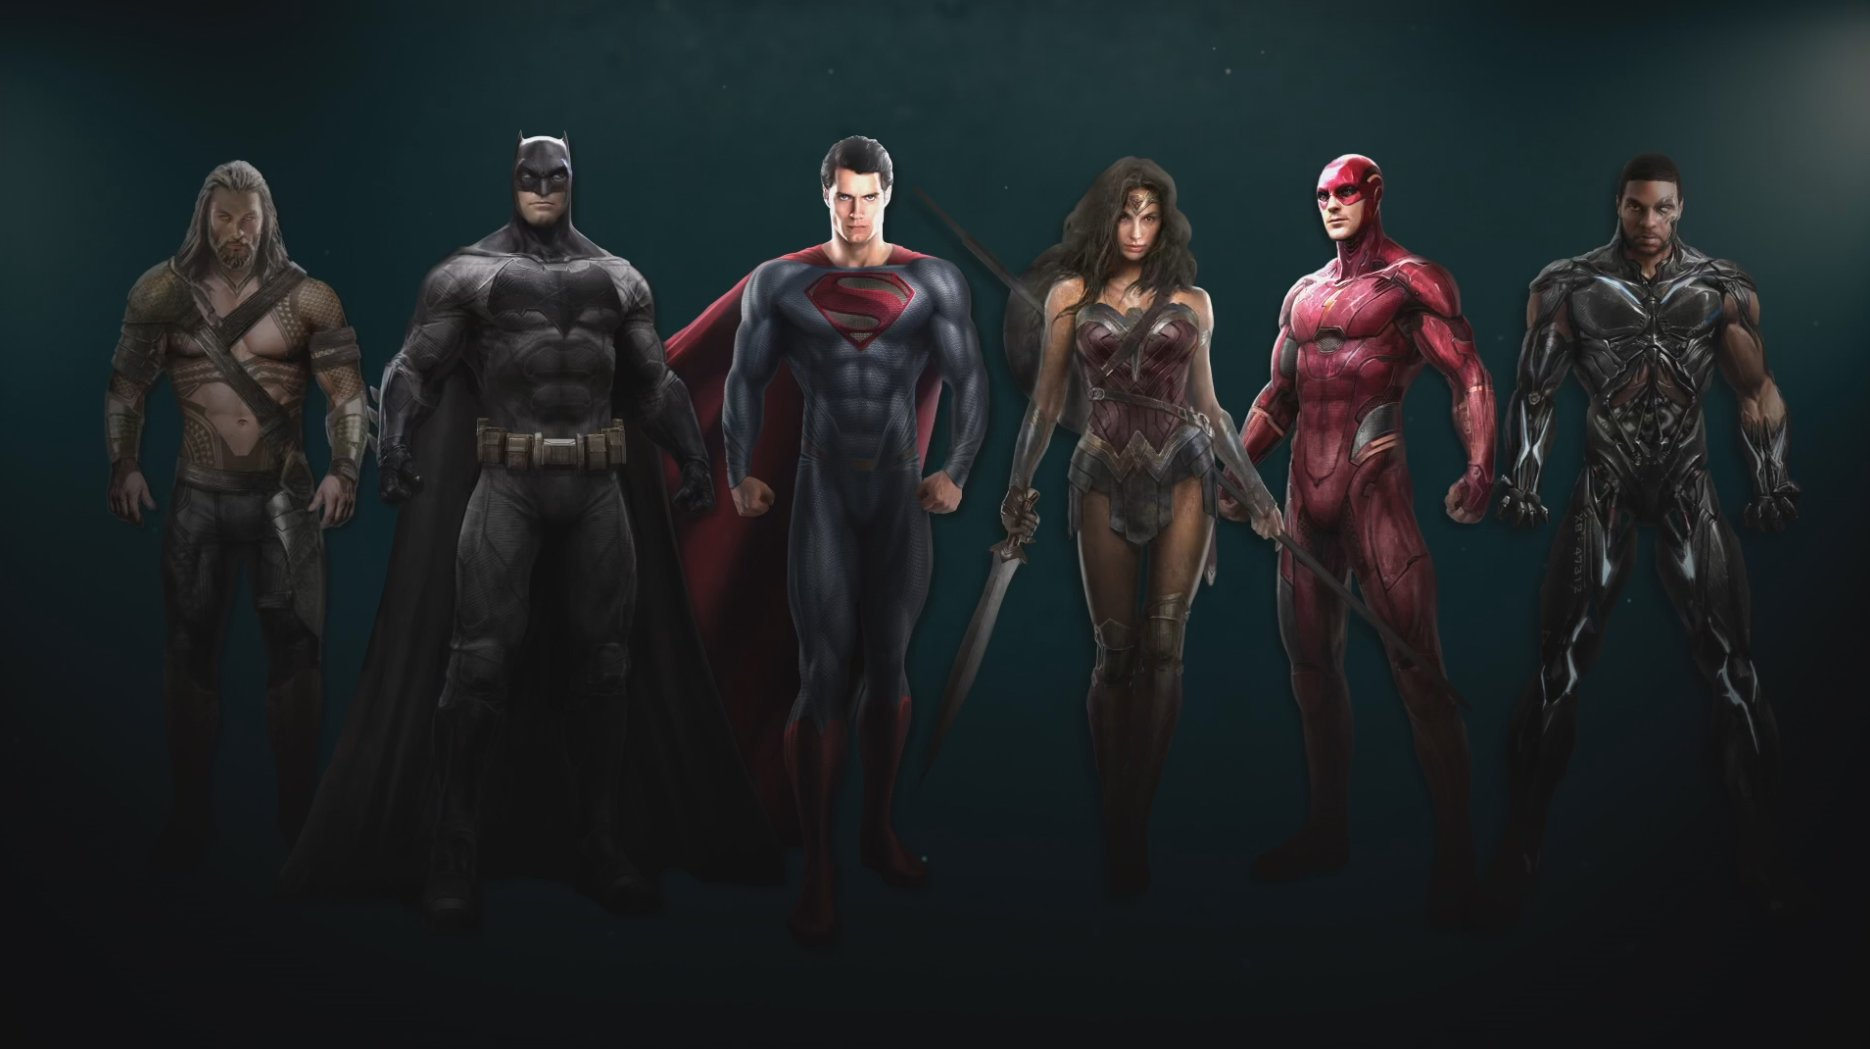 justice-league-concept-art-1